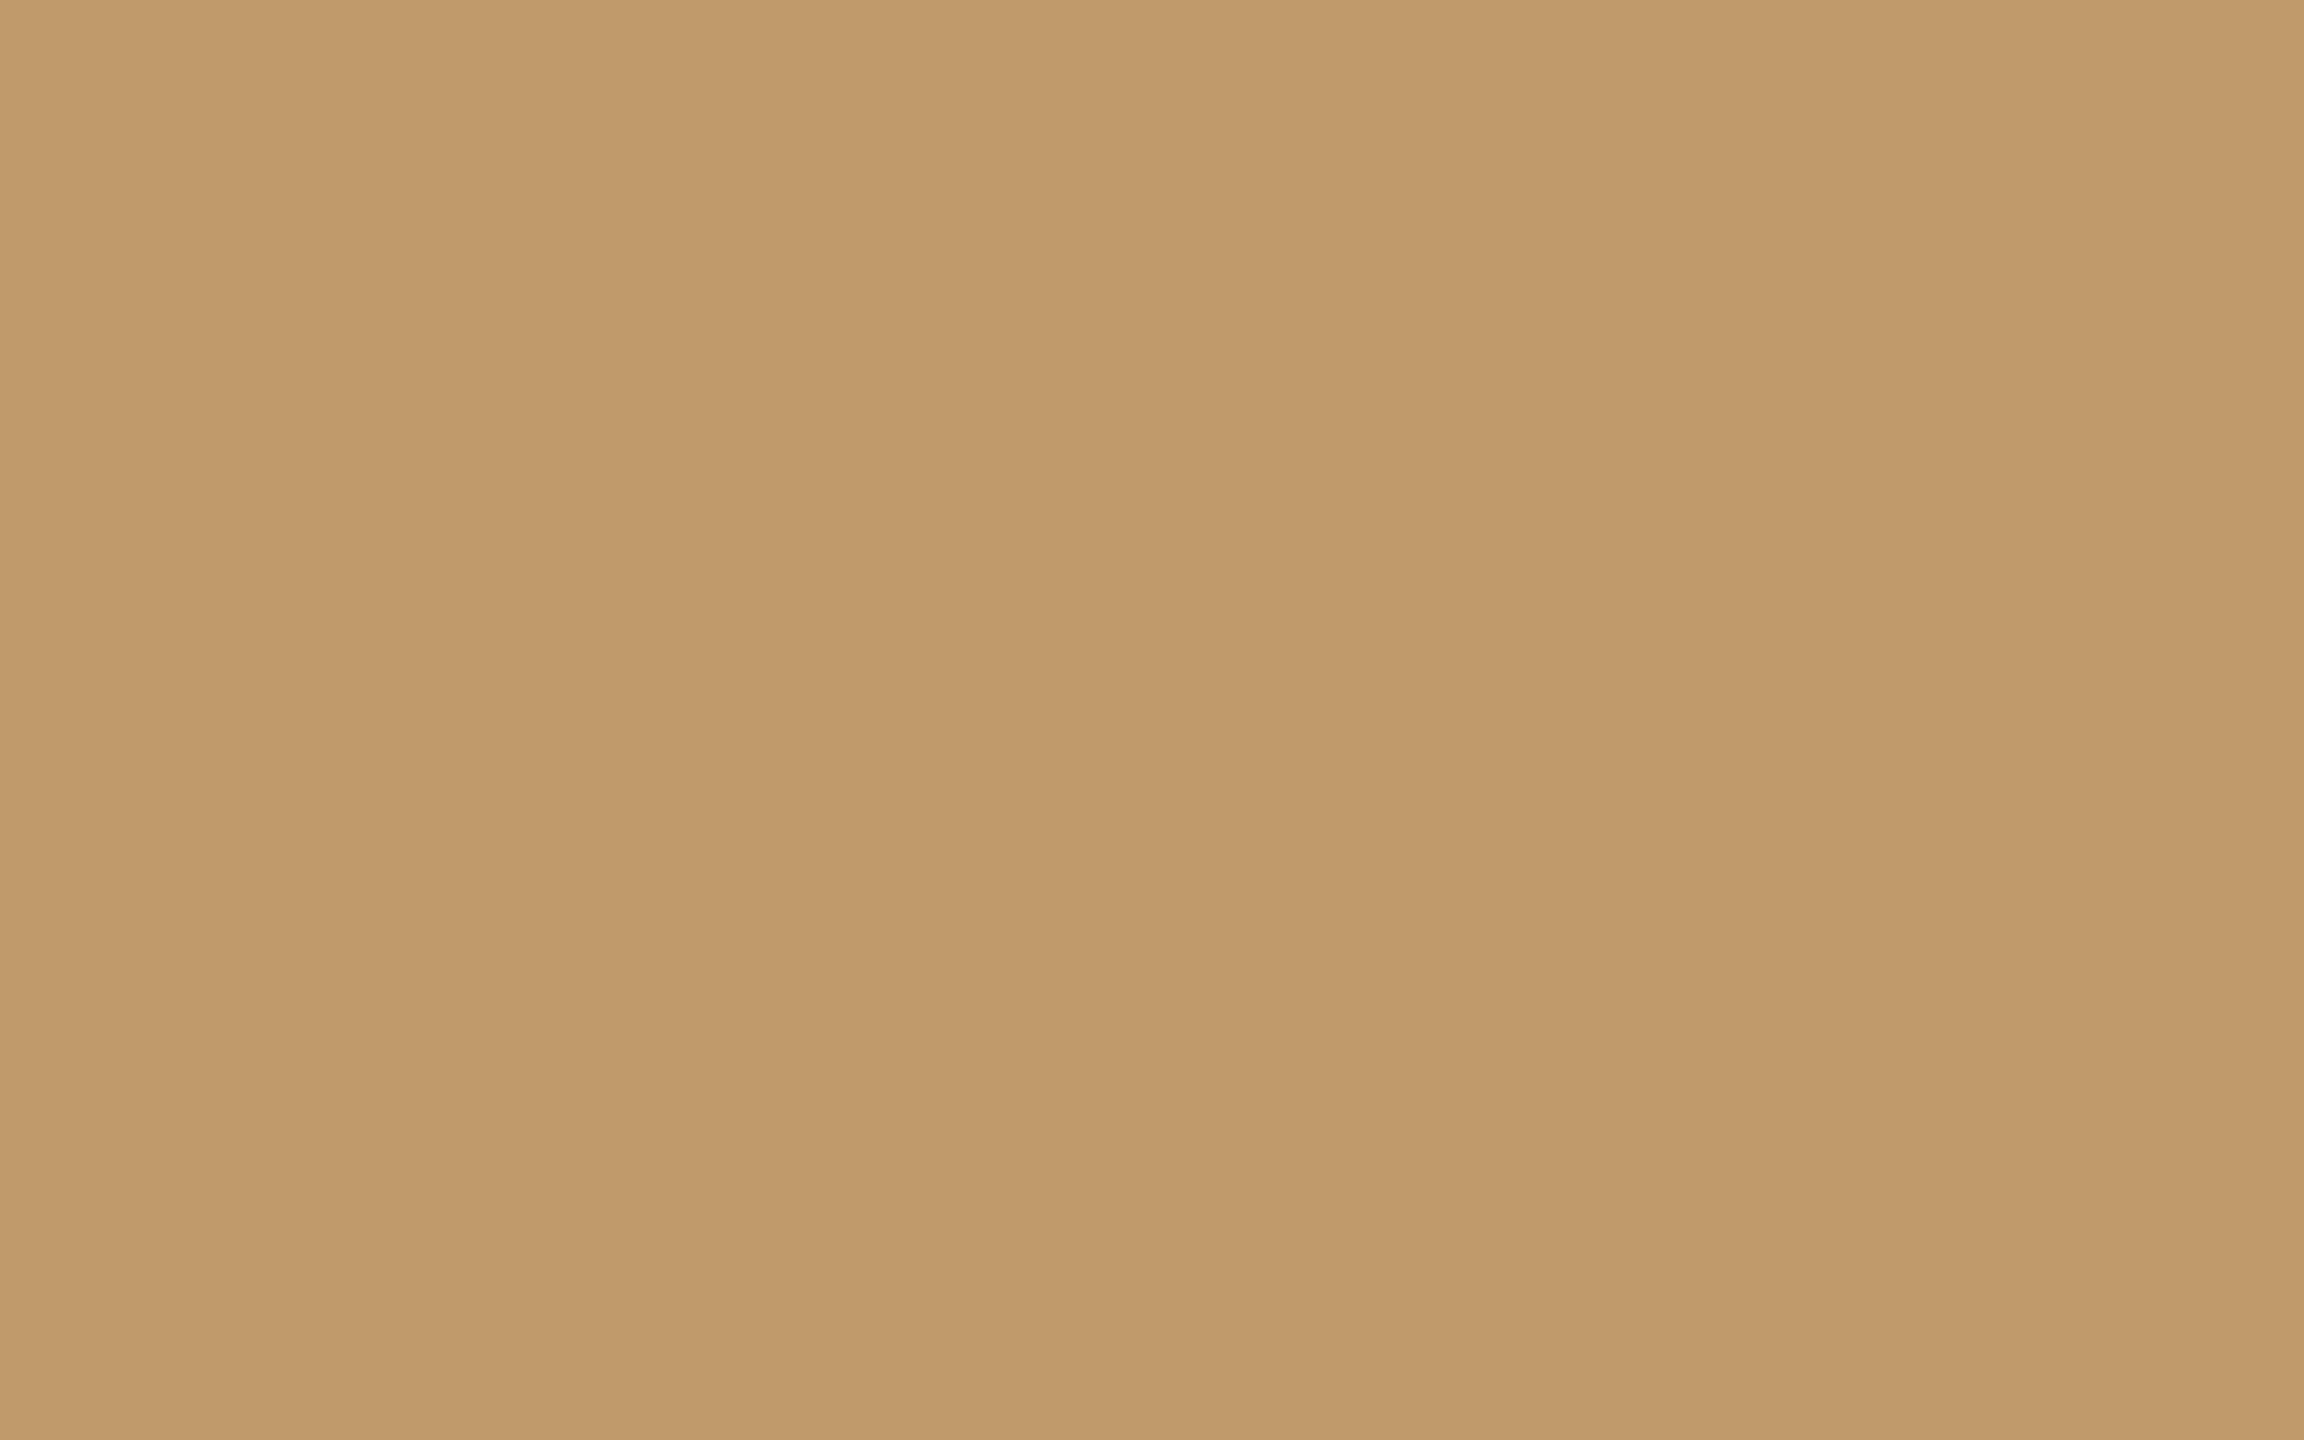 2304x1440 Wood Brown Solid Color Background